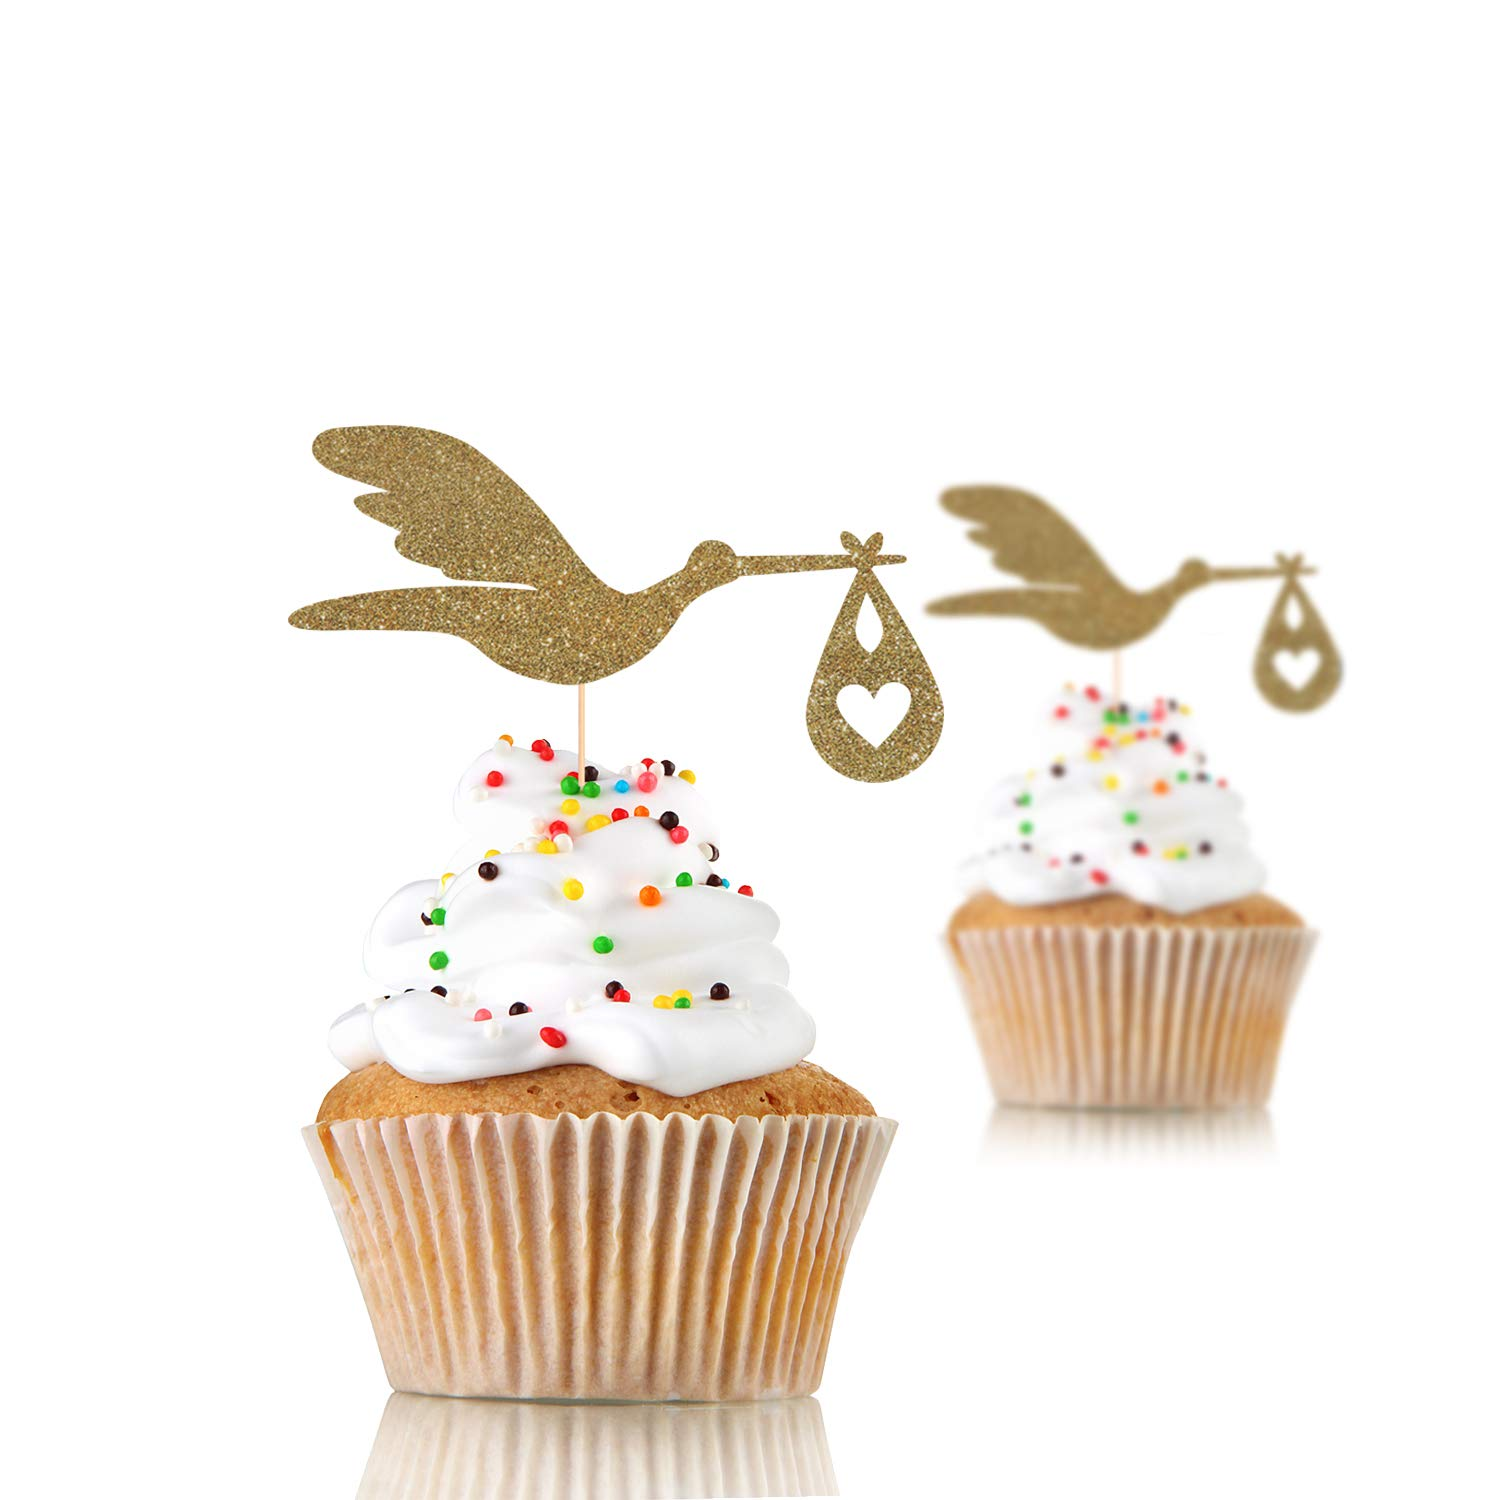 12 x Stork cupcake topper, welcome baby, baby shower, baby girl, baby boy, 12 rose gold glitter cupcake topper,new baby party decor